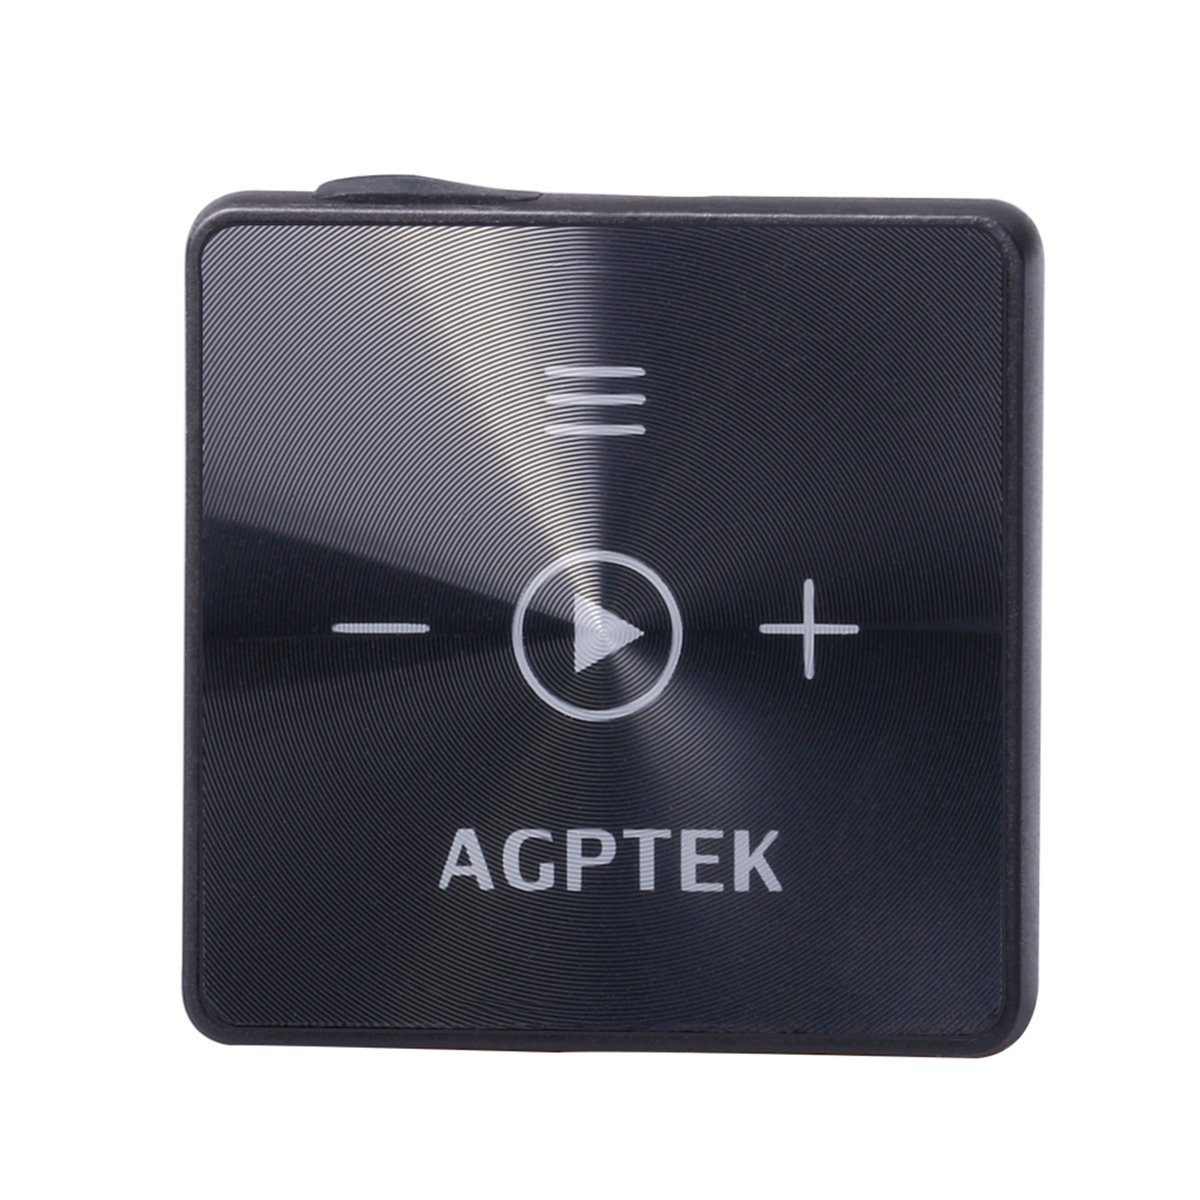 AGPTEK A15 Wireless Bluetooth 4.2 Receiver with Mini Clip for Outdoor Sports, HiFi Music Player with 8GB Memory, Black SMPA15B